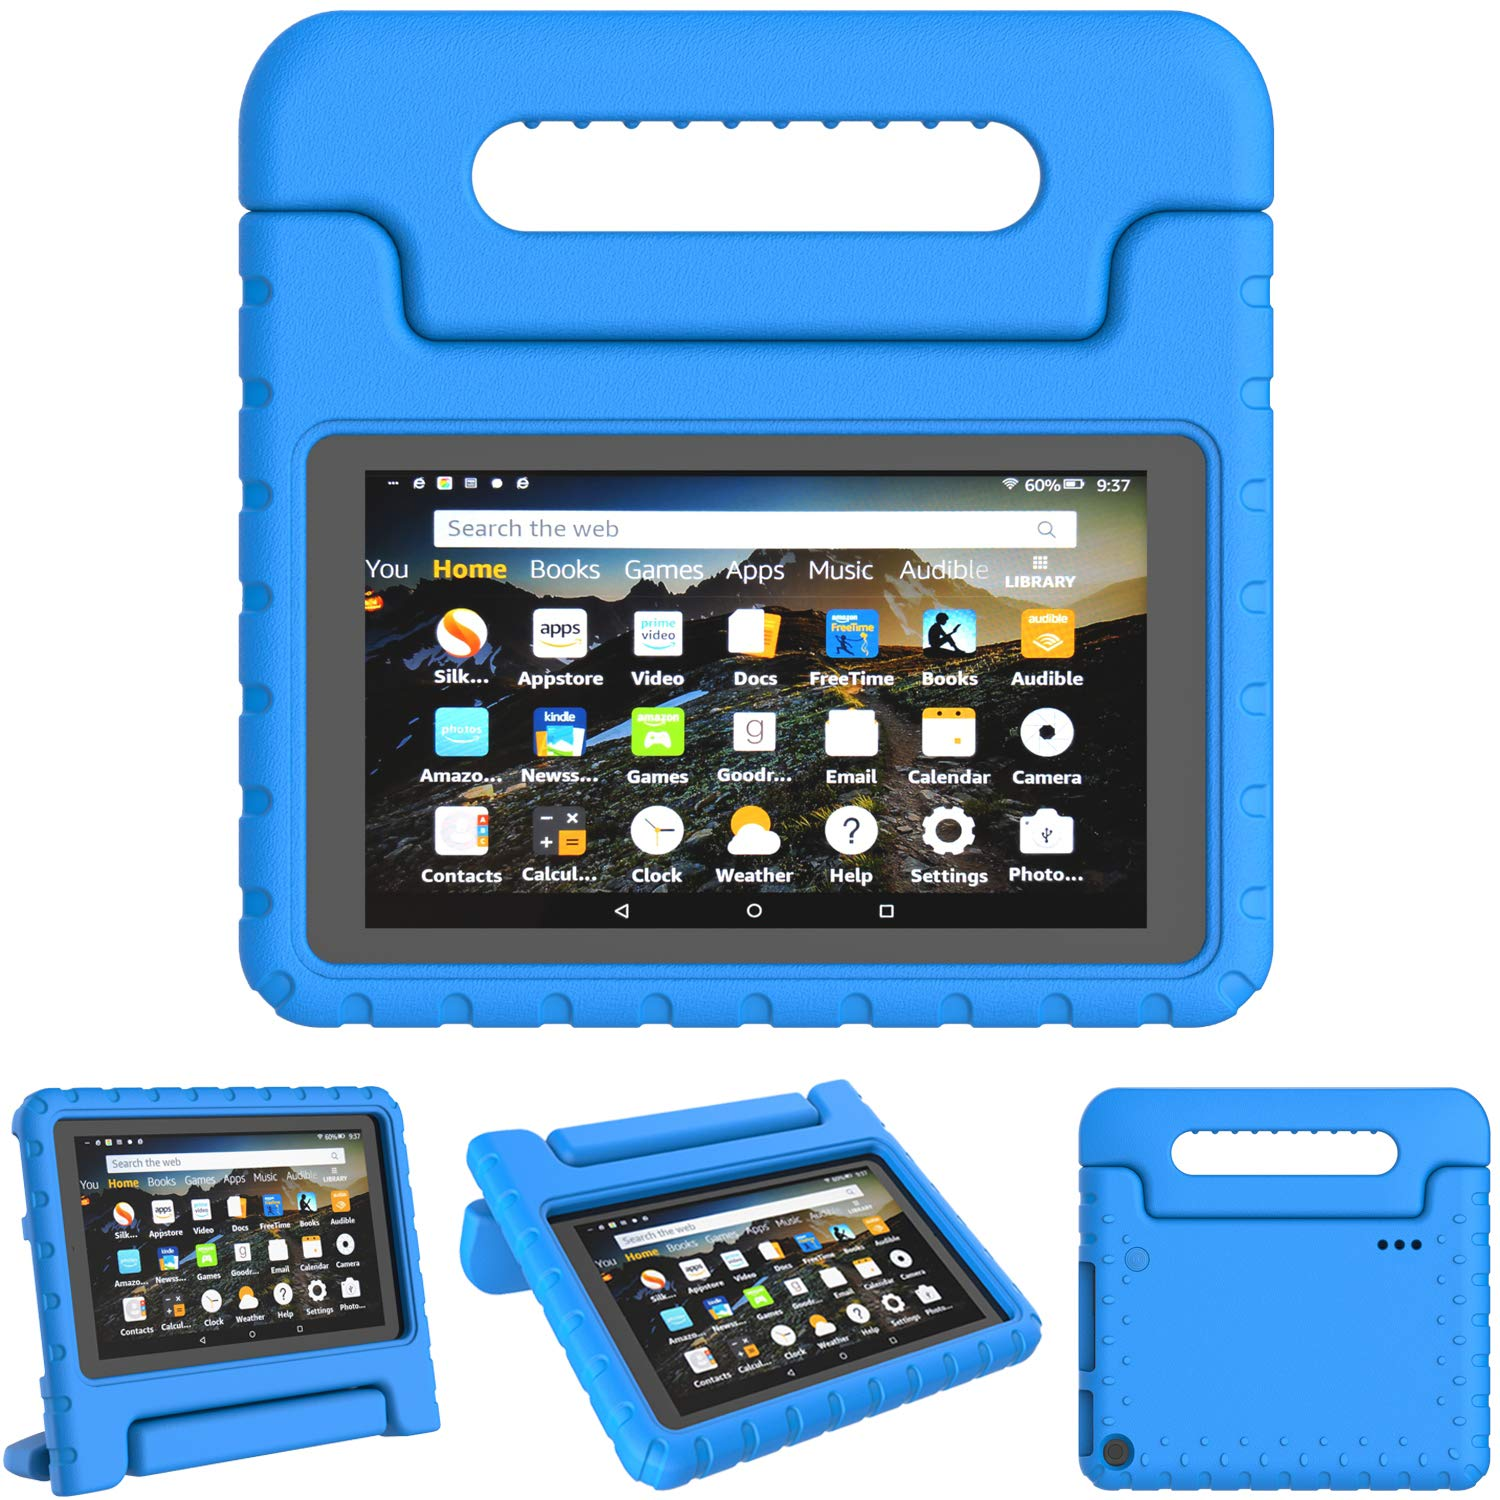 """TIRIN Kids Case for All-New Fire 7 2019 - Light Weight Shock Proof Convertible Handle Stand Protective Kid-Proof Case for All-New Amazon Fire 7 Tablet(9th Generation - 2019 Release)(7"""" Display), Blue"""